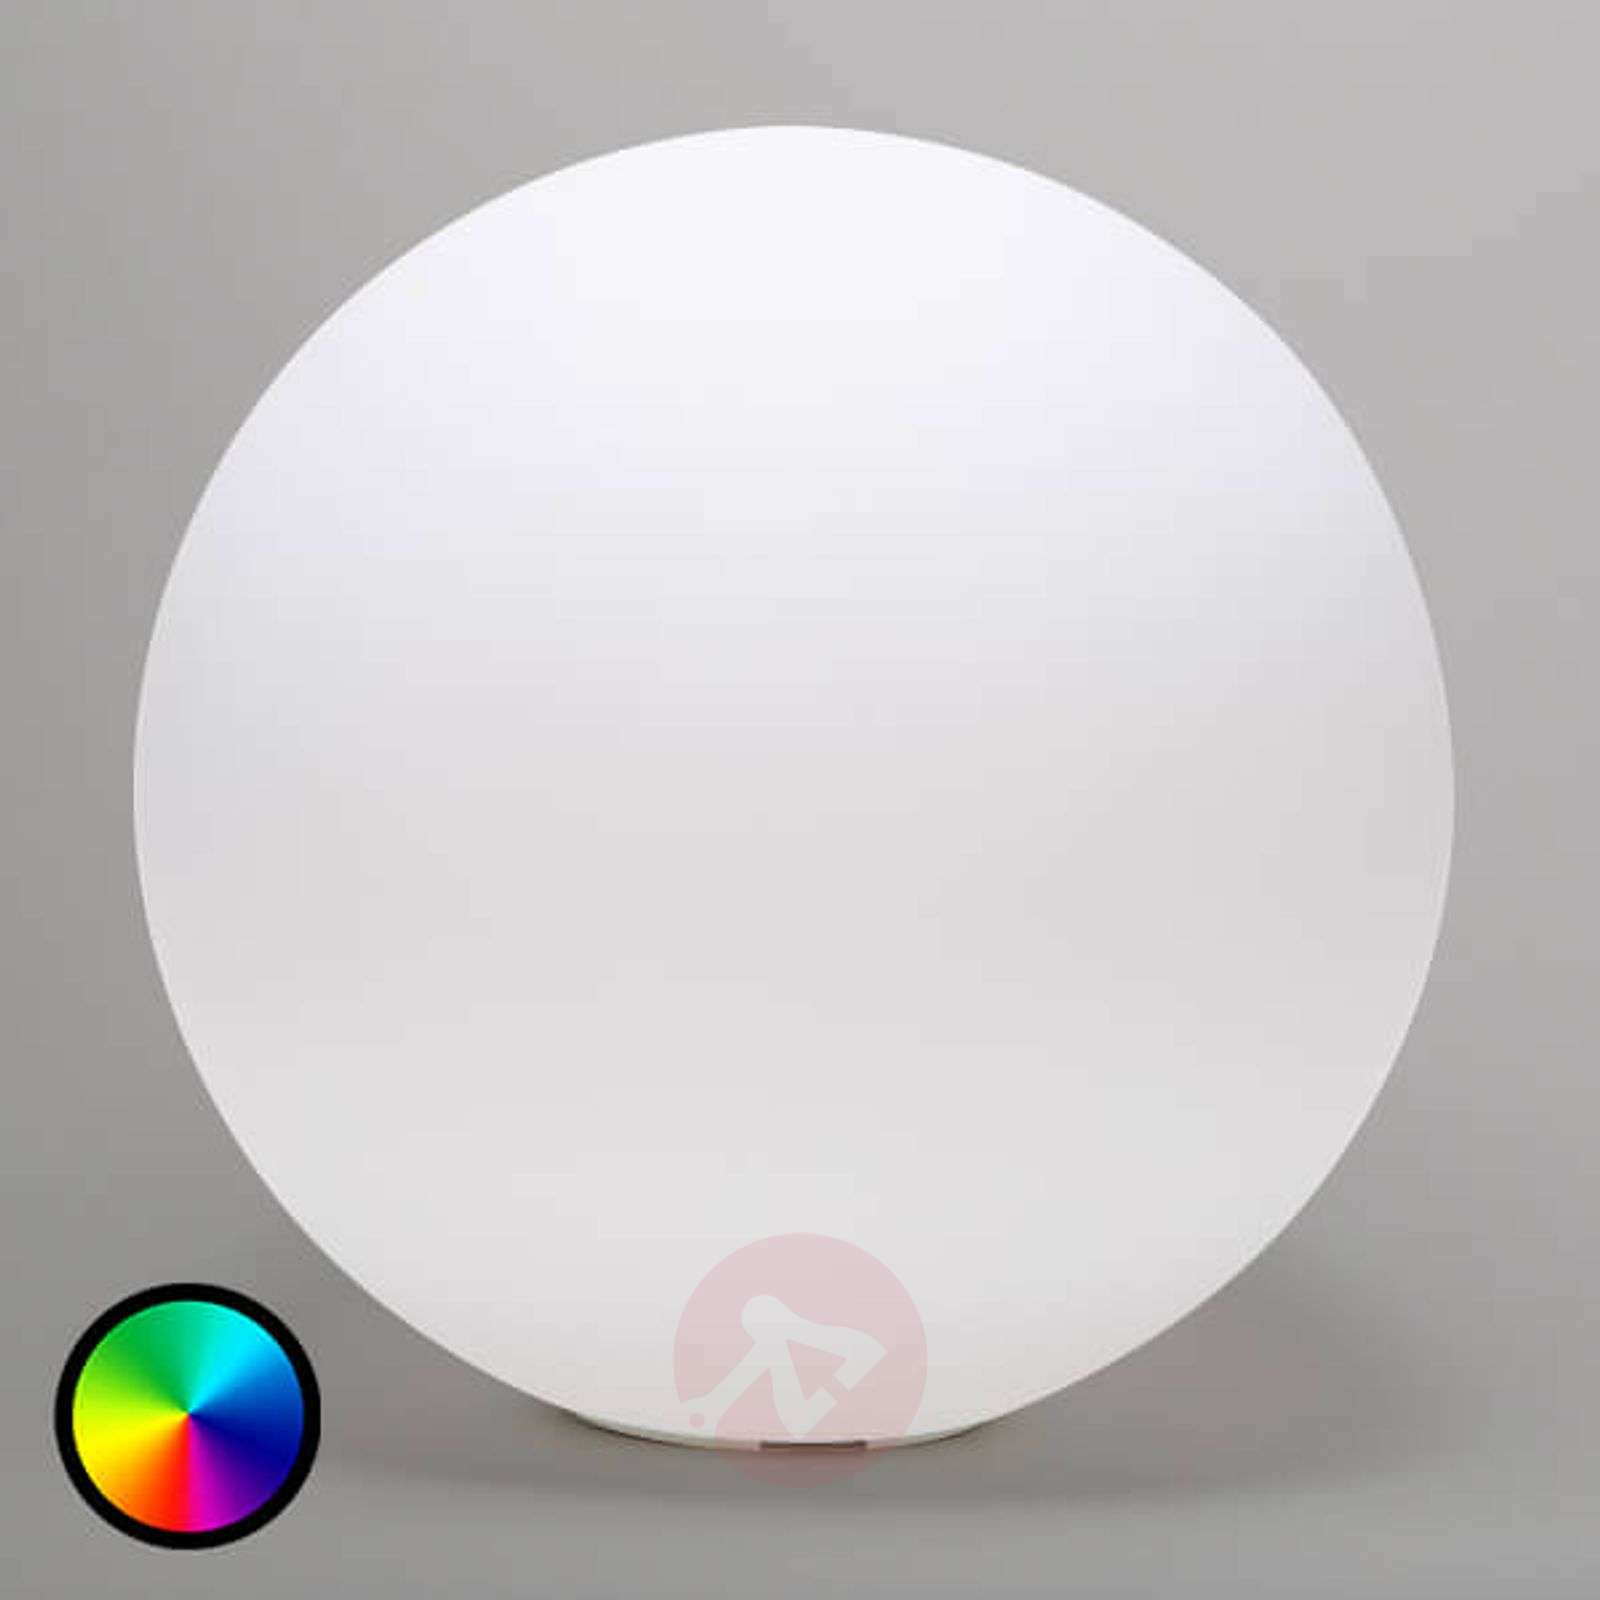 Buoyant LED decorative light Ball-8590017-01